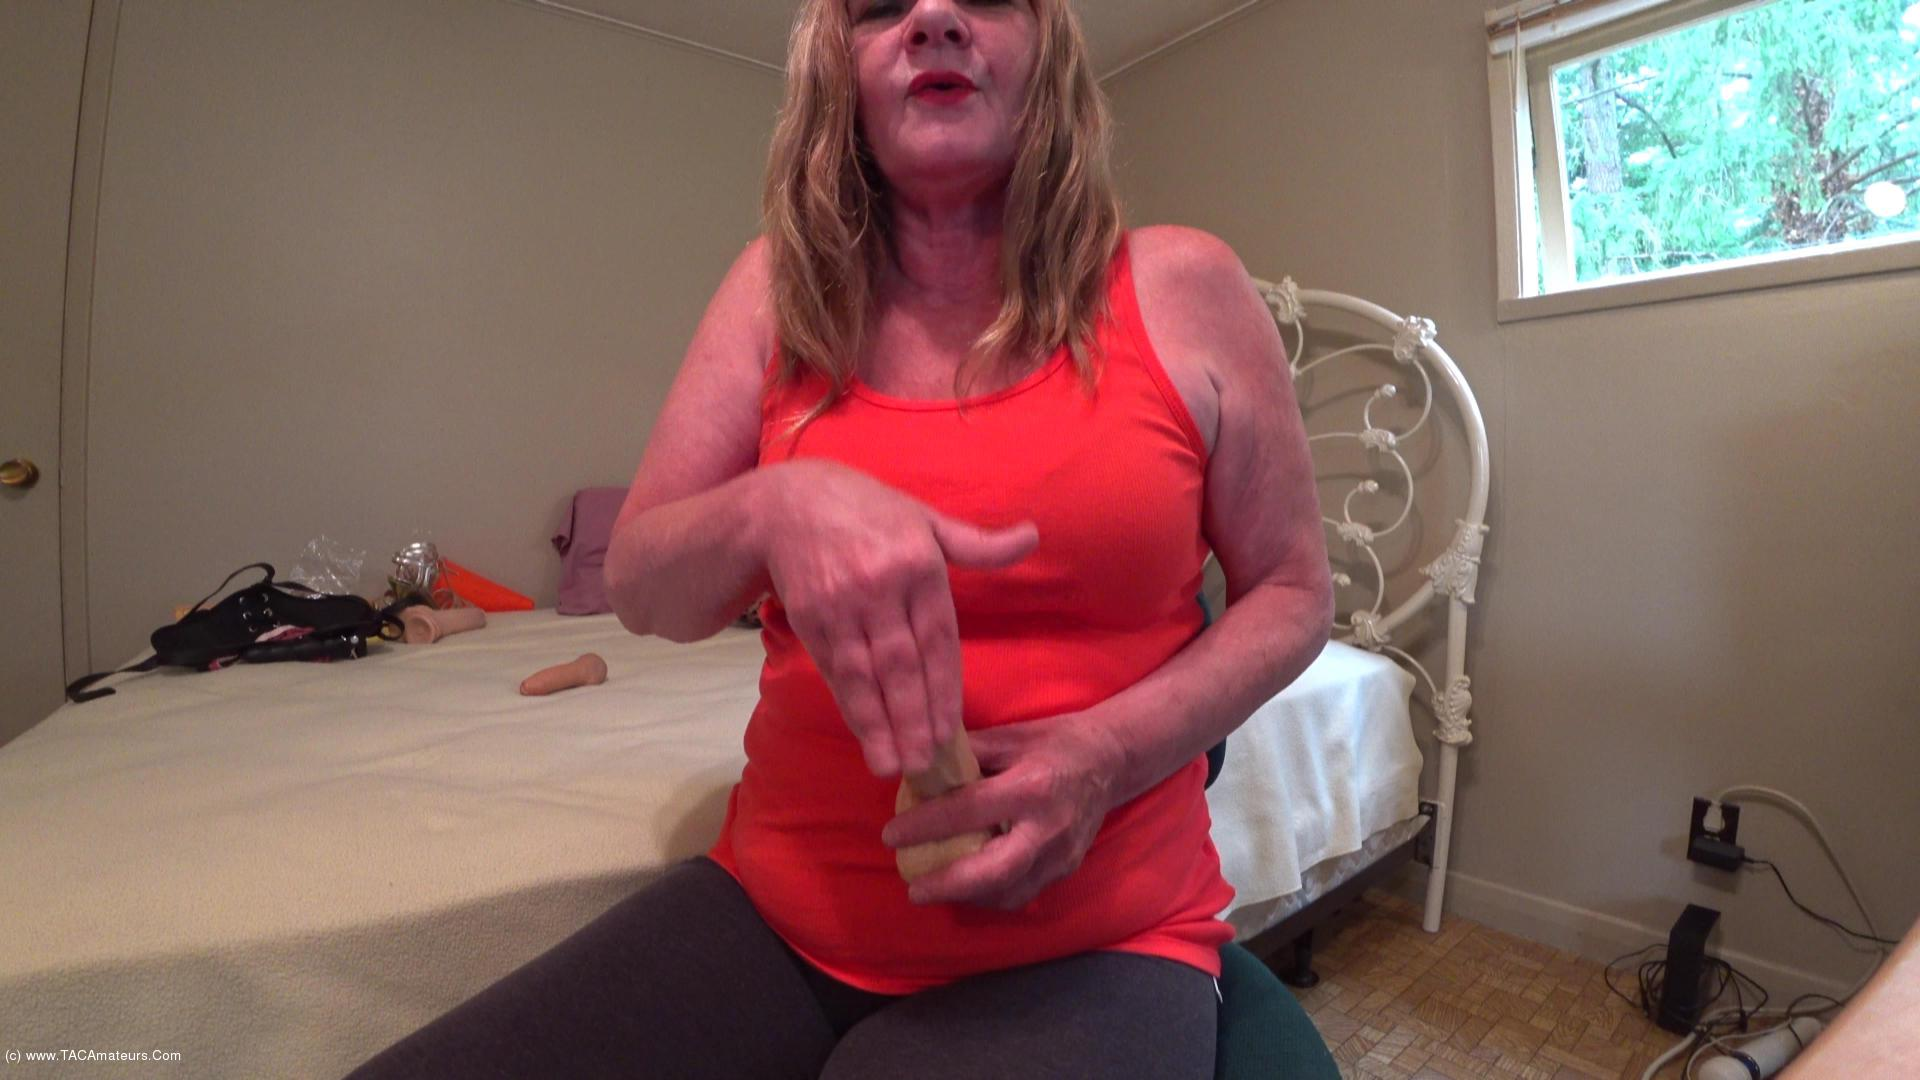 CougarBabeJolee - Pathetic Loser. Your Tiny Penis SPH Fun scene 3